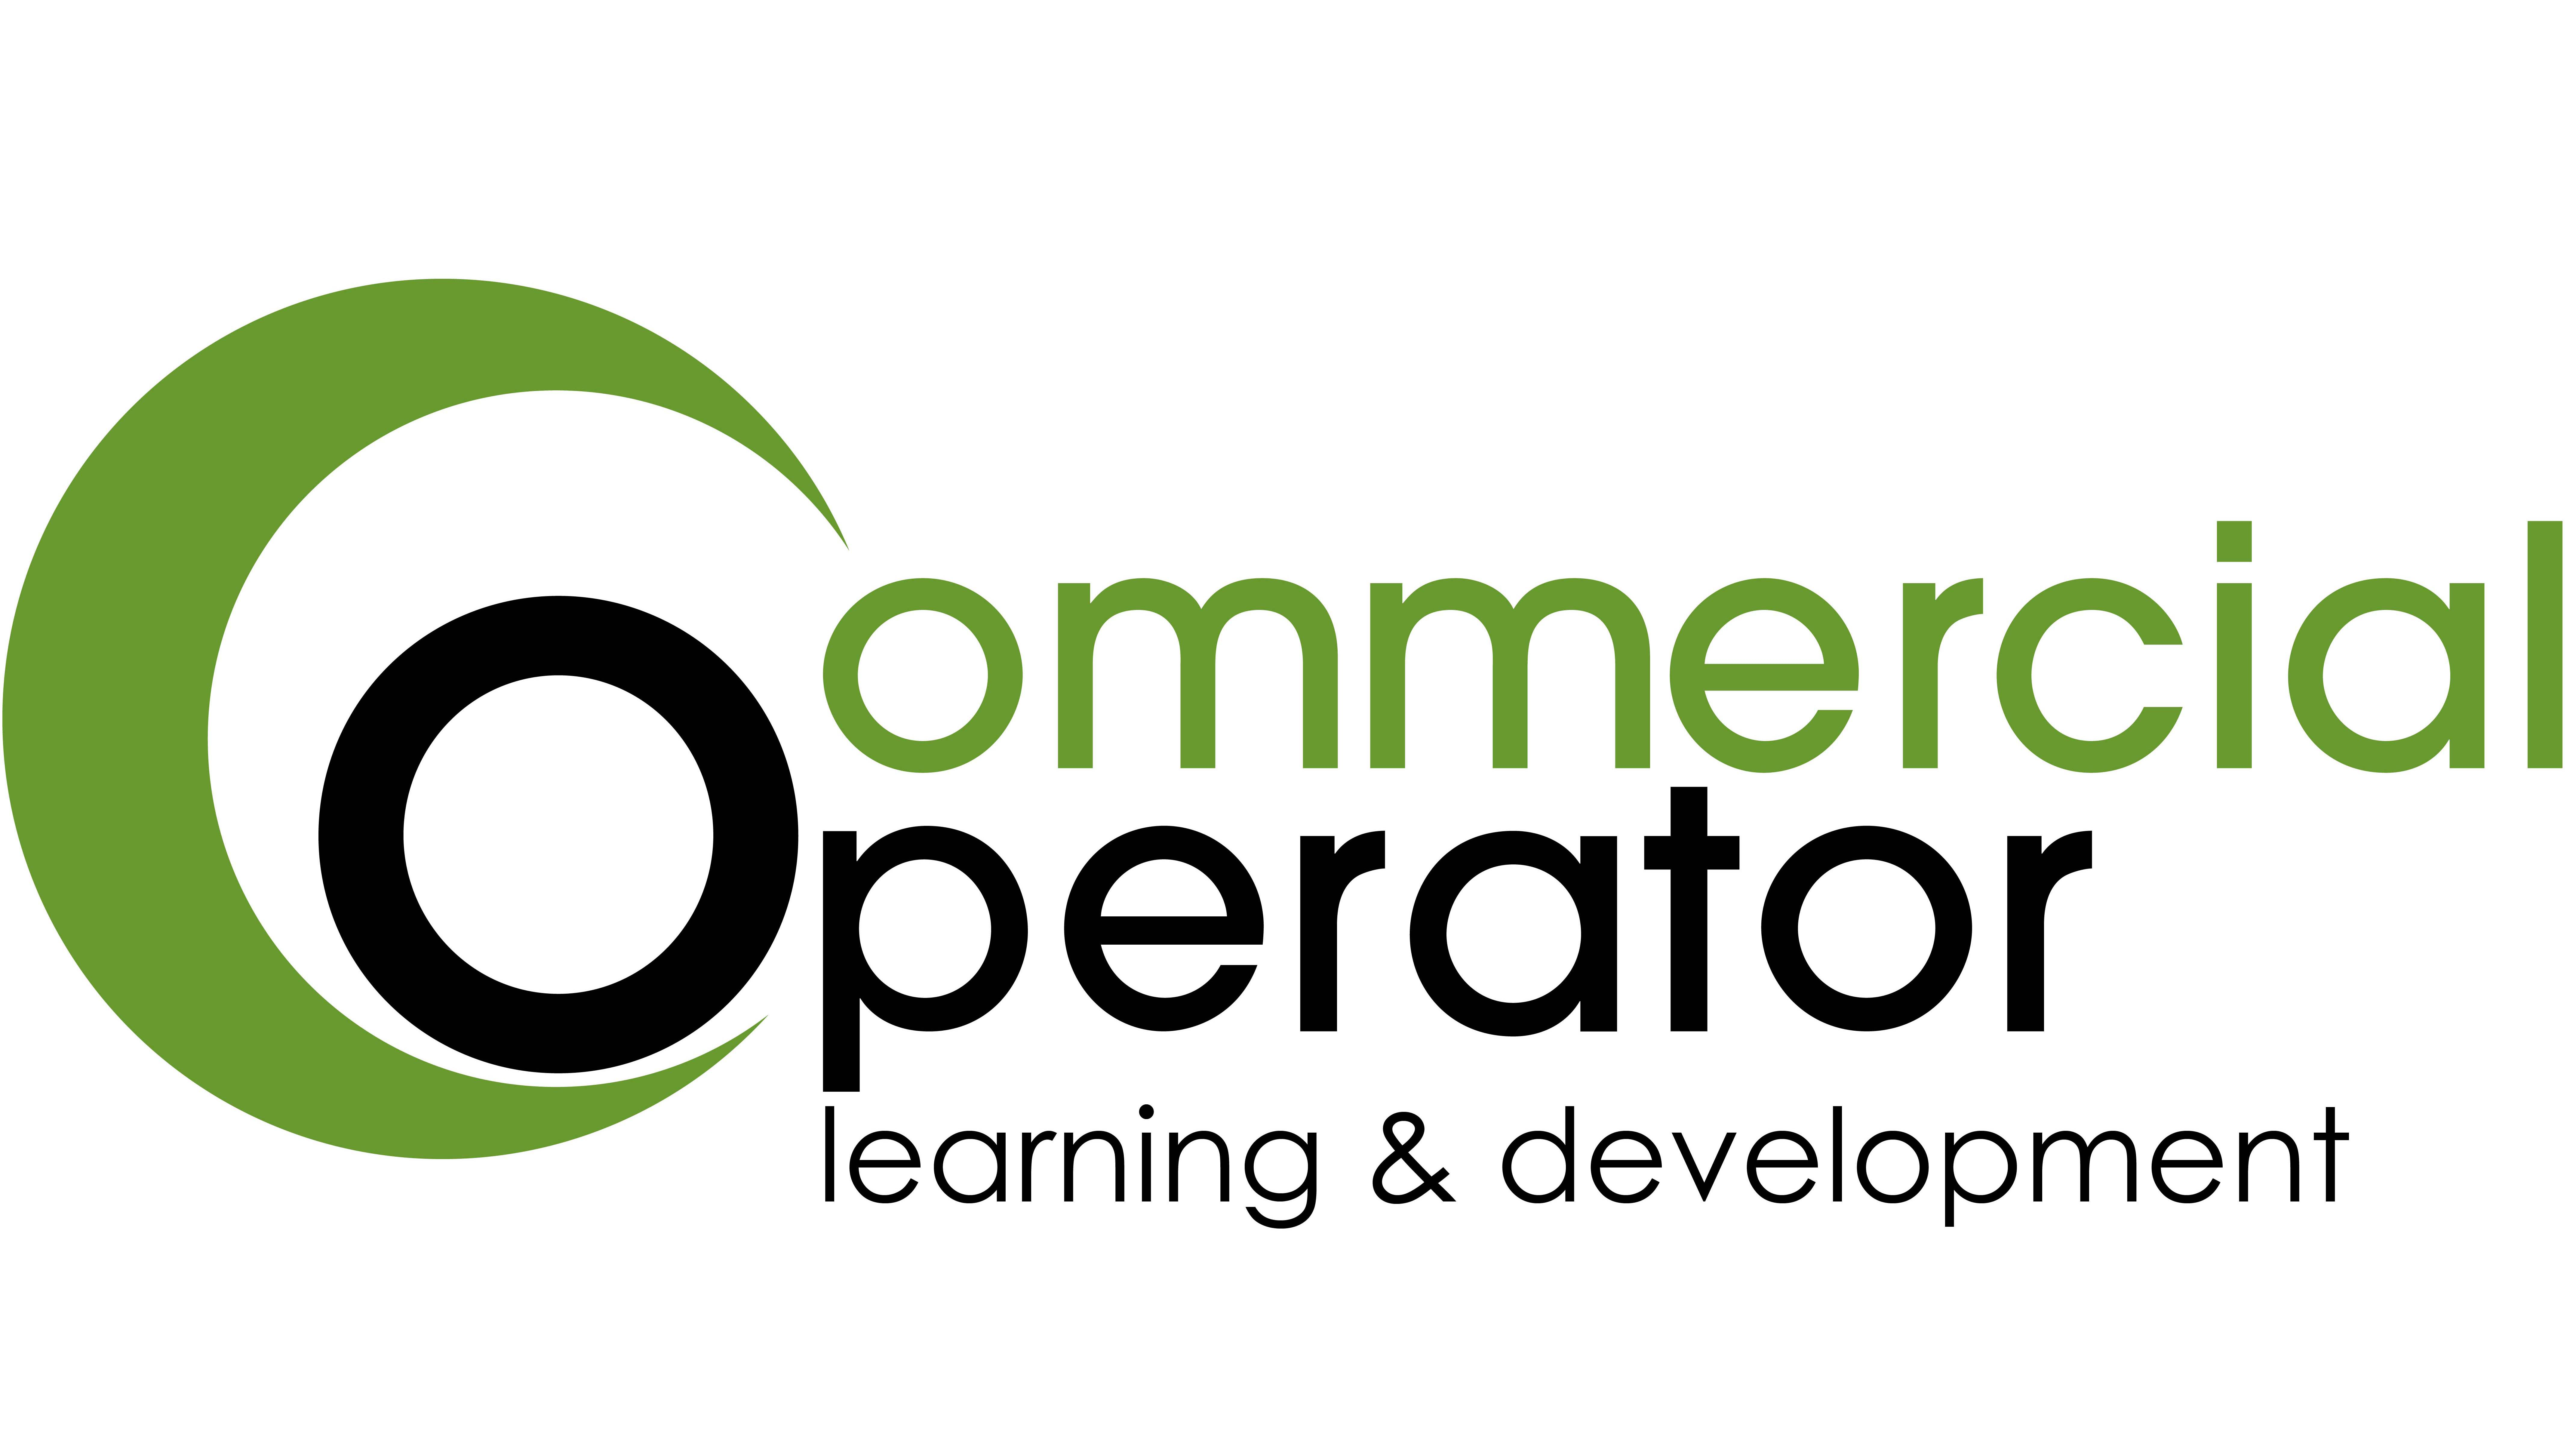 Commercial Operator